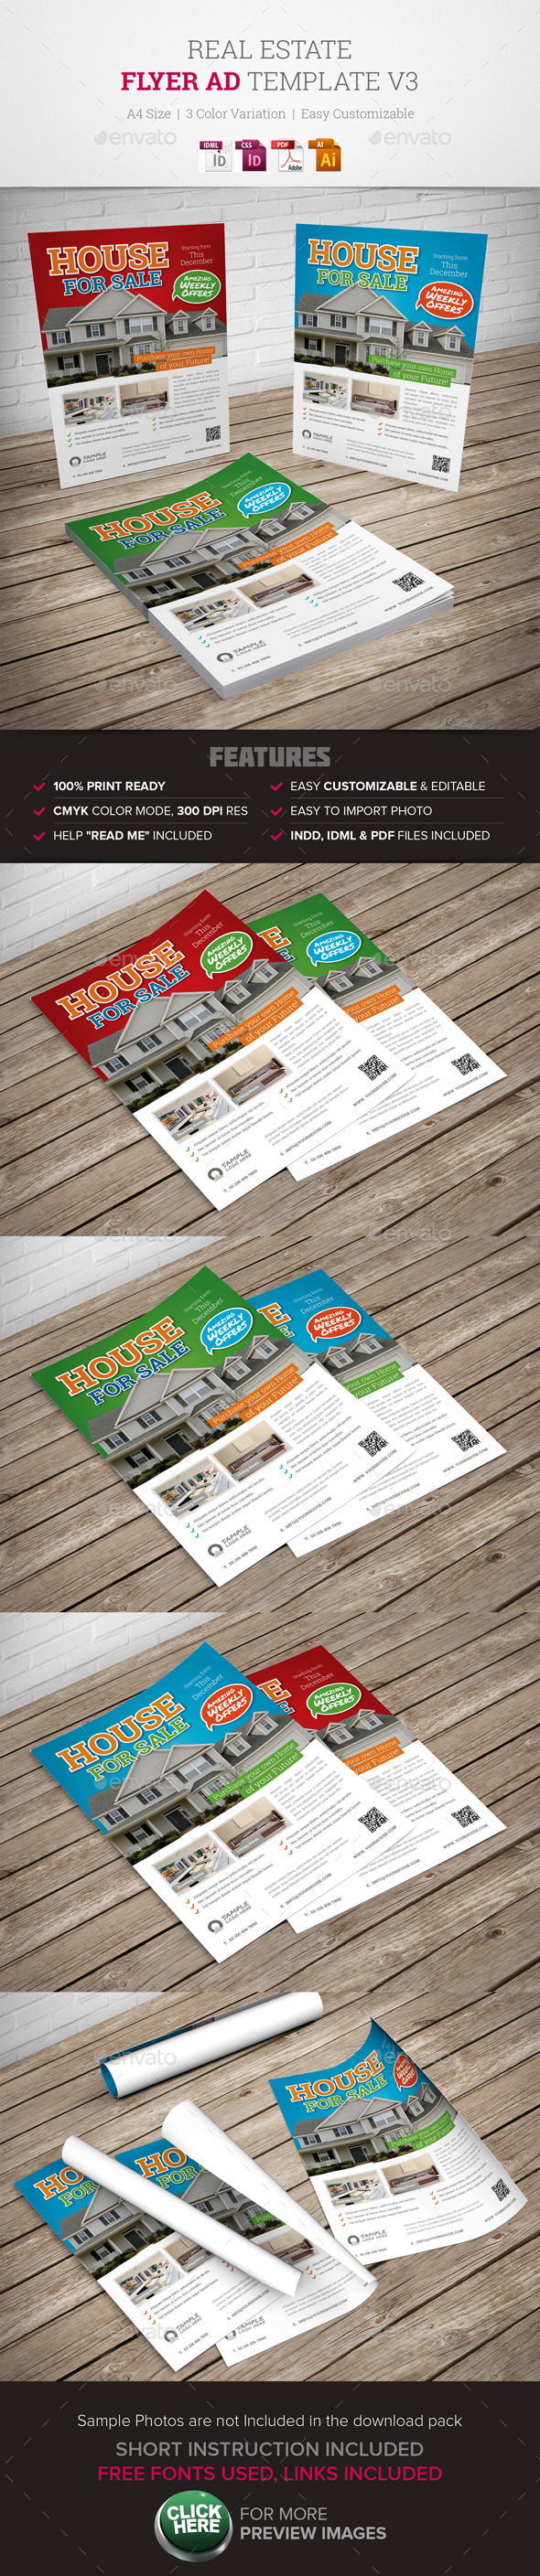 GraphicRiver Real Estate Flyer Ad v3 9963415